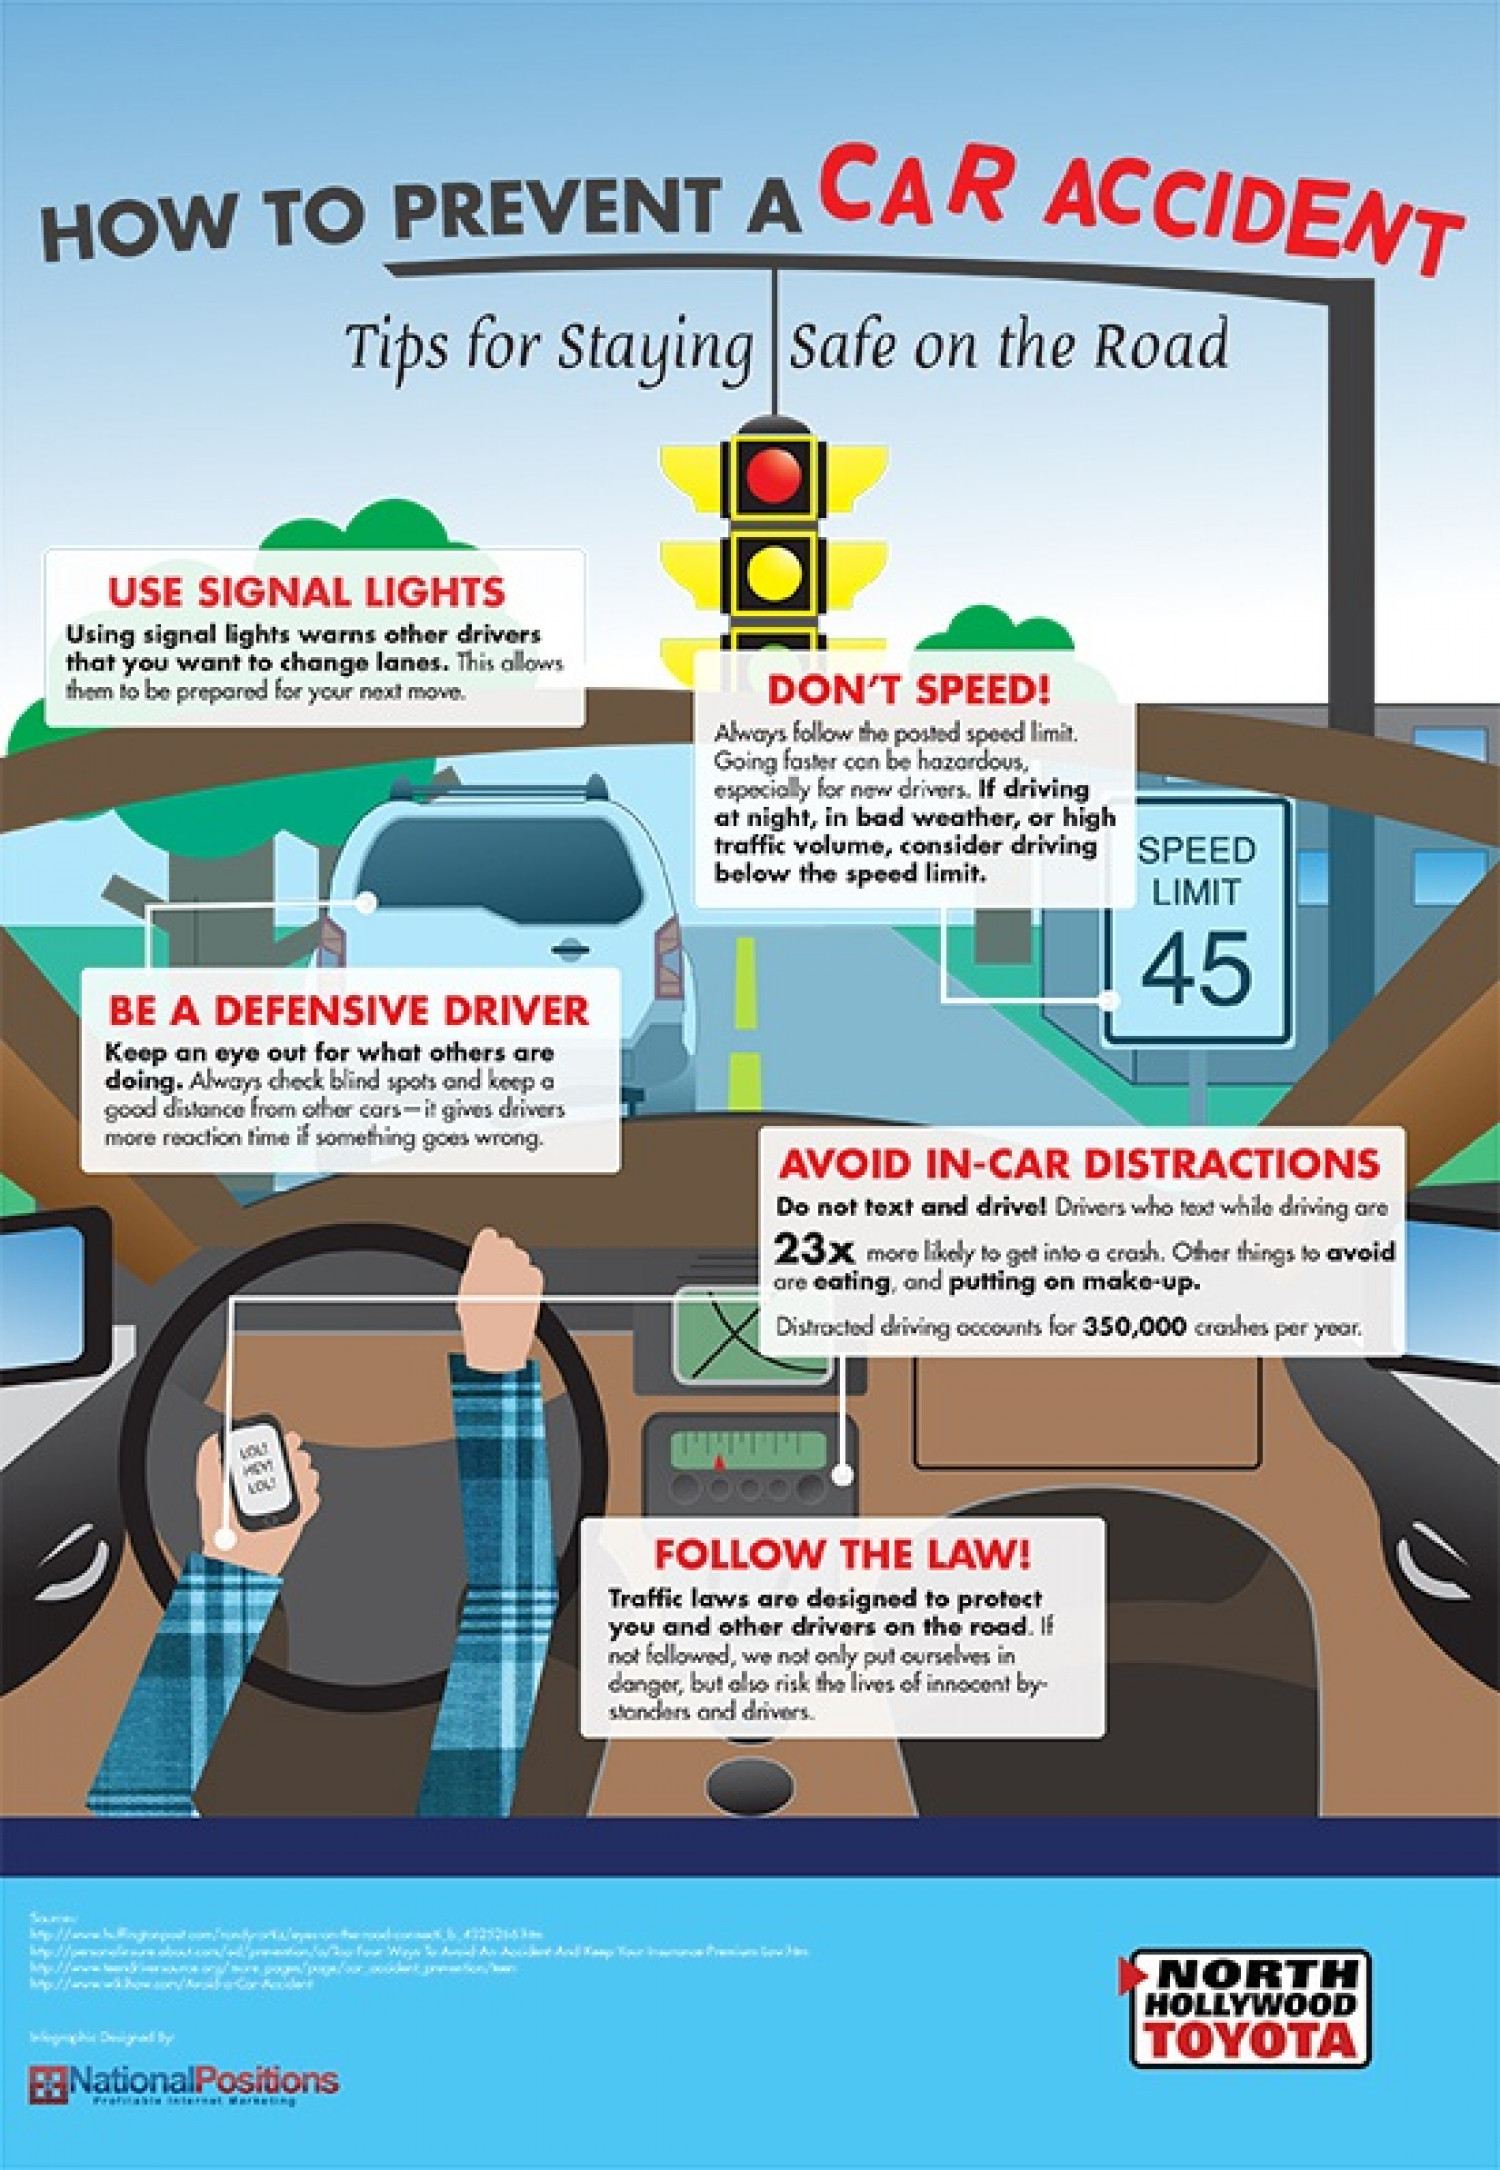 Tips to Prevent a Car Accident Infographic